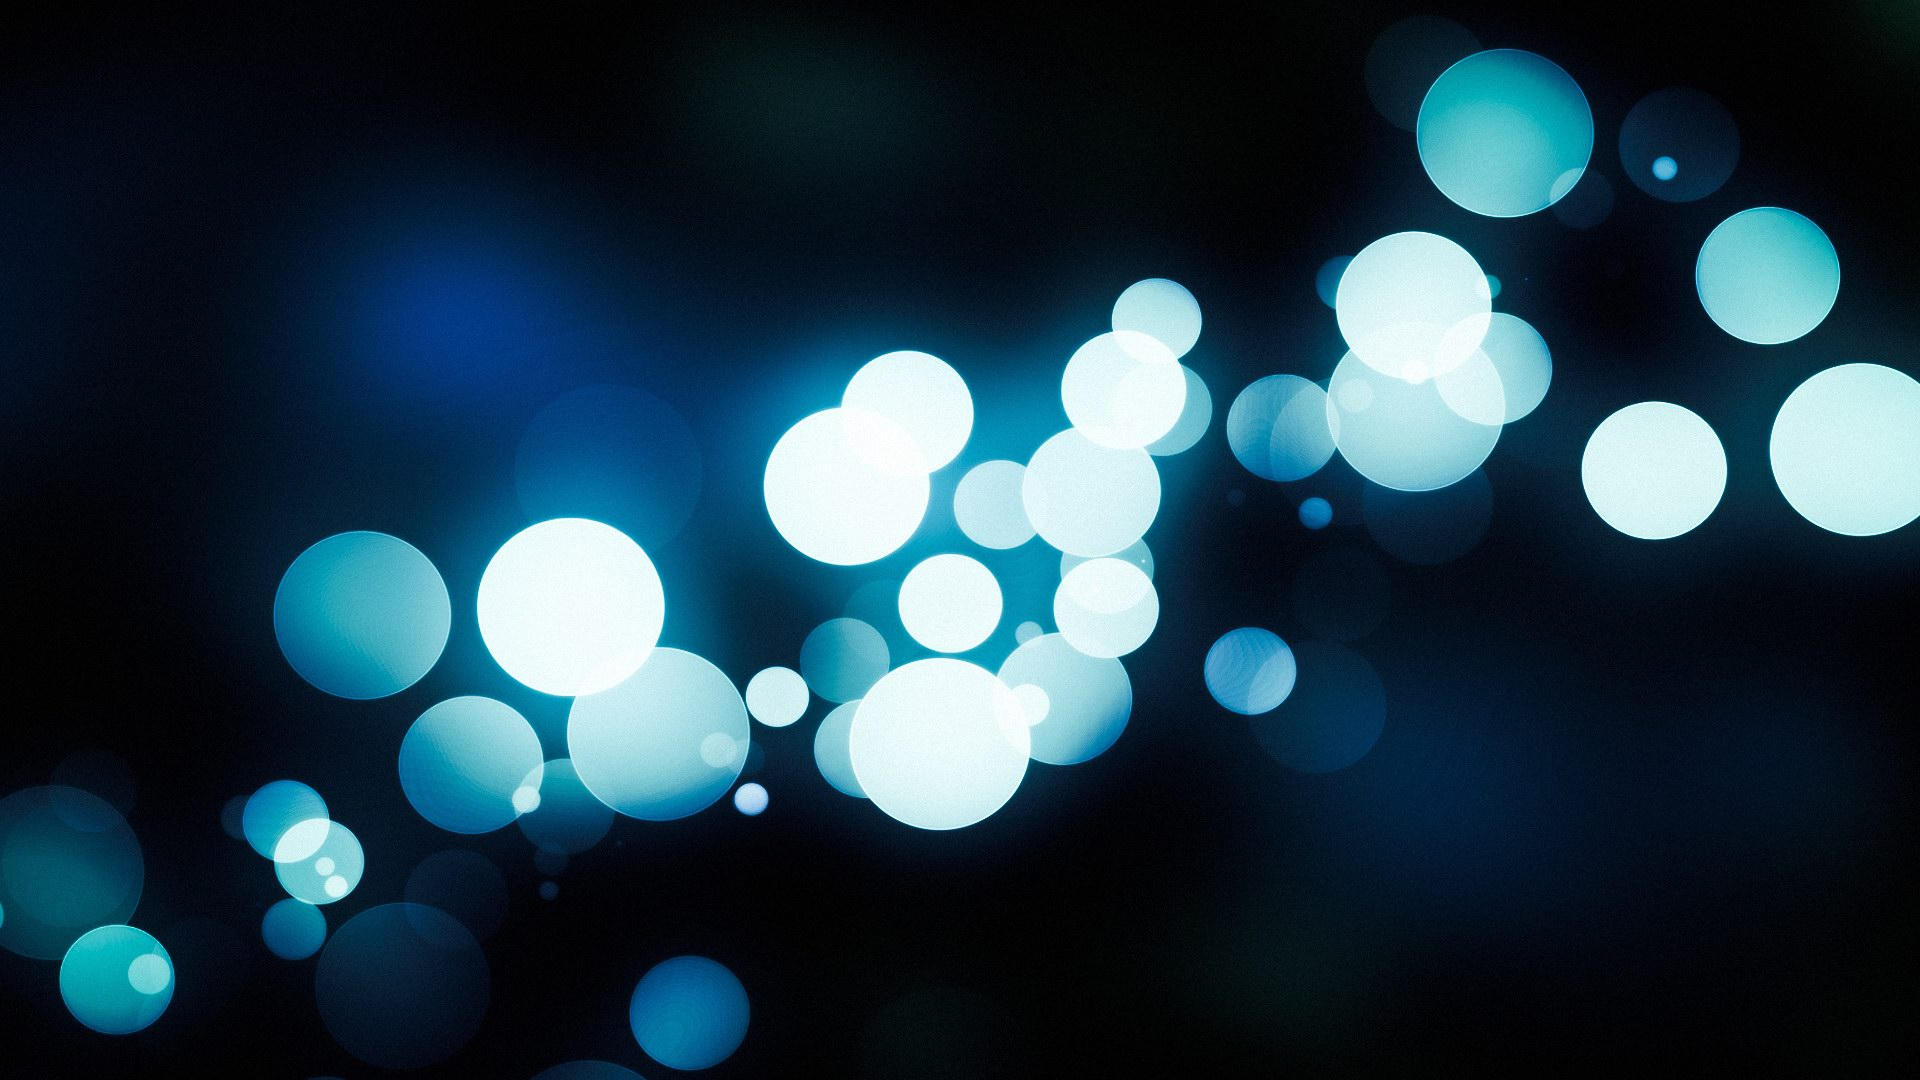 Bokeh Backgrounds on Wallpapers Vista